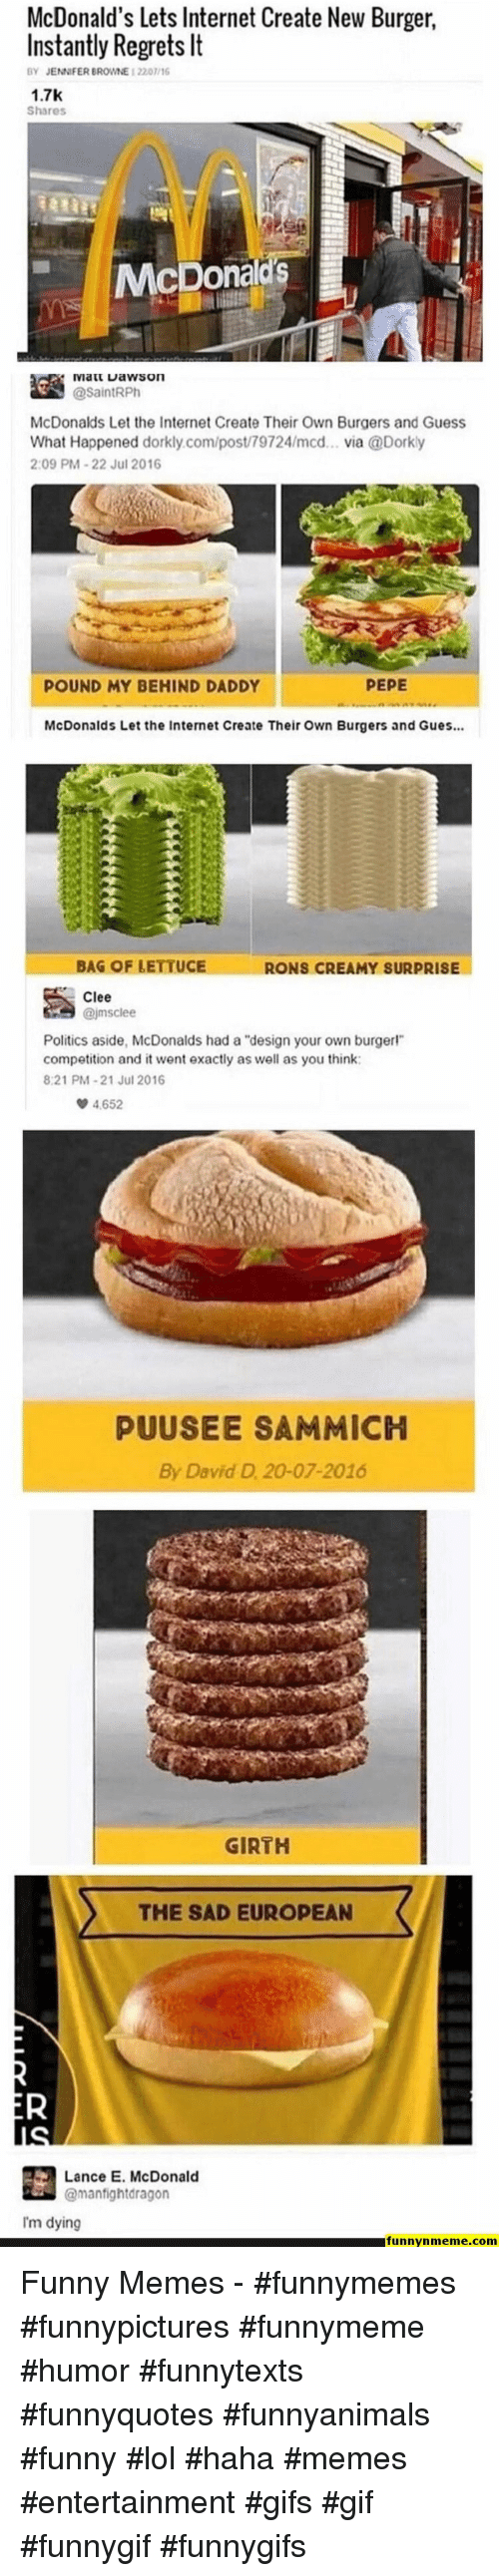 """Creamy: McDonald's Lets Internet Create New Burger  Instantly Regrets It  BY JENNFER BROWNE 12201/16  1.7K  Shares  McDona  逵 iviaarta wson  McDonalds Let the Internet Create Their Own Burgers and Guess  What Happened dorkly.com/post/79724/mcd... via @Dorky  2:09 PM-22 Jul 2016  POUND MY BEHIND DADDY  PEPE  McDonalds Let the Internet Create Their Own Burgers and Gues...  BAG OF LETTUCE  RONS CREAMY SURPRISE  Clee  Politics aside, McDonalds had a """"design your own burgerl""""  competition and it went exactly as well as you think  821 PM-21 Jul 2016  4652  PUUSEE SAMMICH  By David D 20-07-2016  GIRTH  THE SAD EUROPEAN  Lance E. McDonald  @manfightdragon  Im dying  funnynmeme.com Funny Memes - #funnymemes #funnypictures #funnymeme #humor #funnytexts #funnyquotes #funnyanimals #funny #lol #haha #memes #entertainment #gifs #gif #funnygif #funnygifs"""